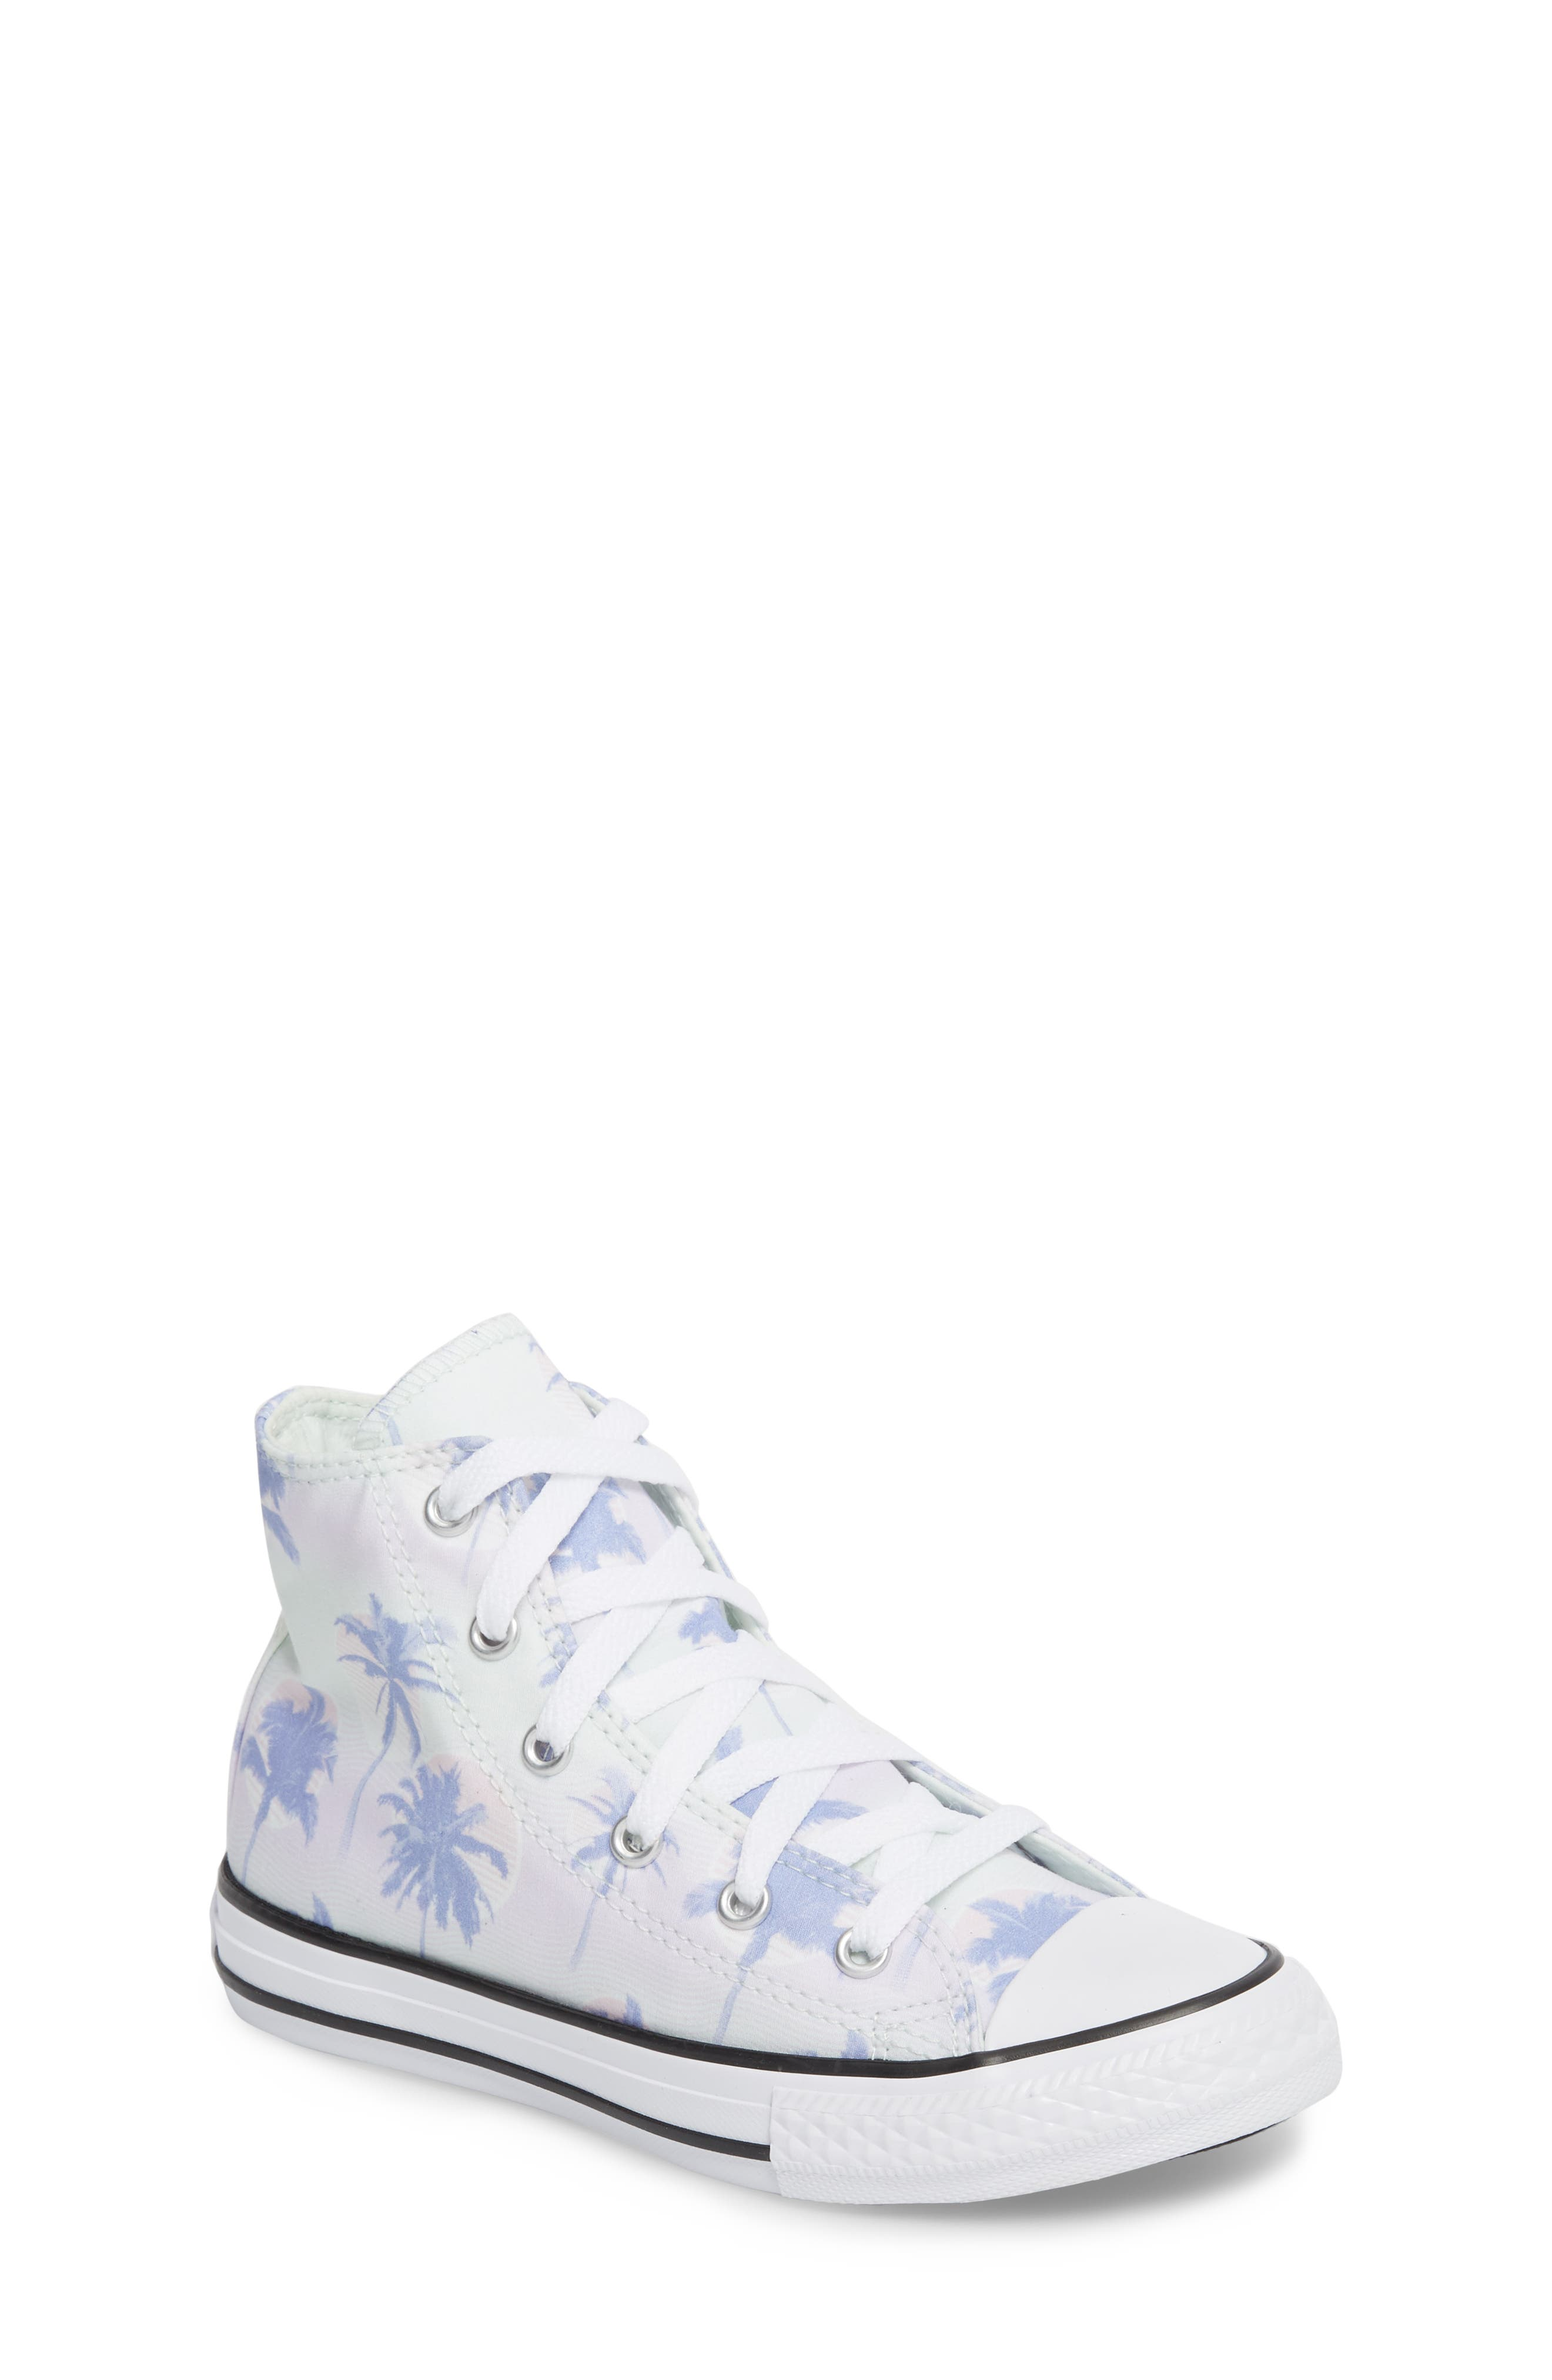 Chuck Taylor<sup>®</sup> All Star<sup>®</sup> Palm Tree High Top Sneaker,                         Main,                         color, 507